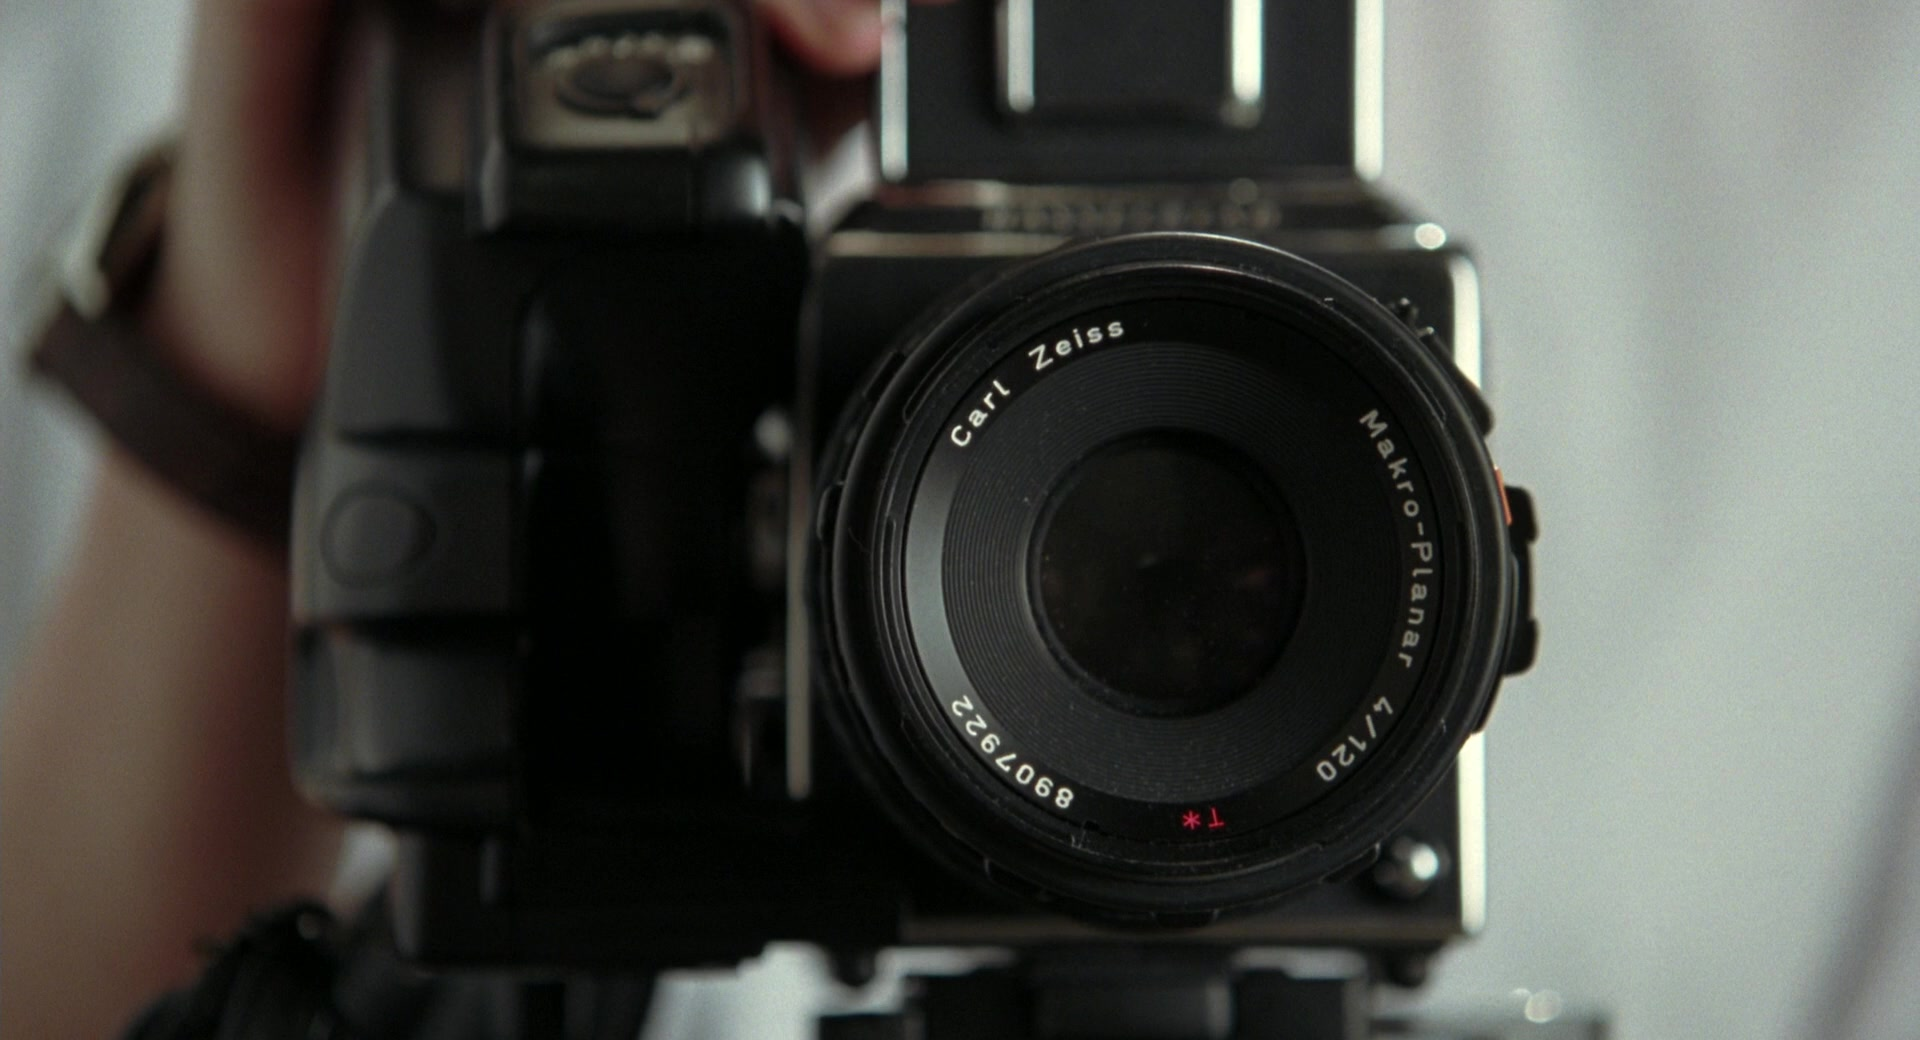 carl zeiss camera used by julia roberts in closer 2004 movie